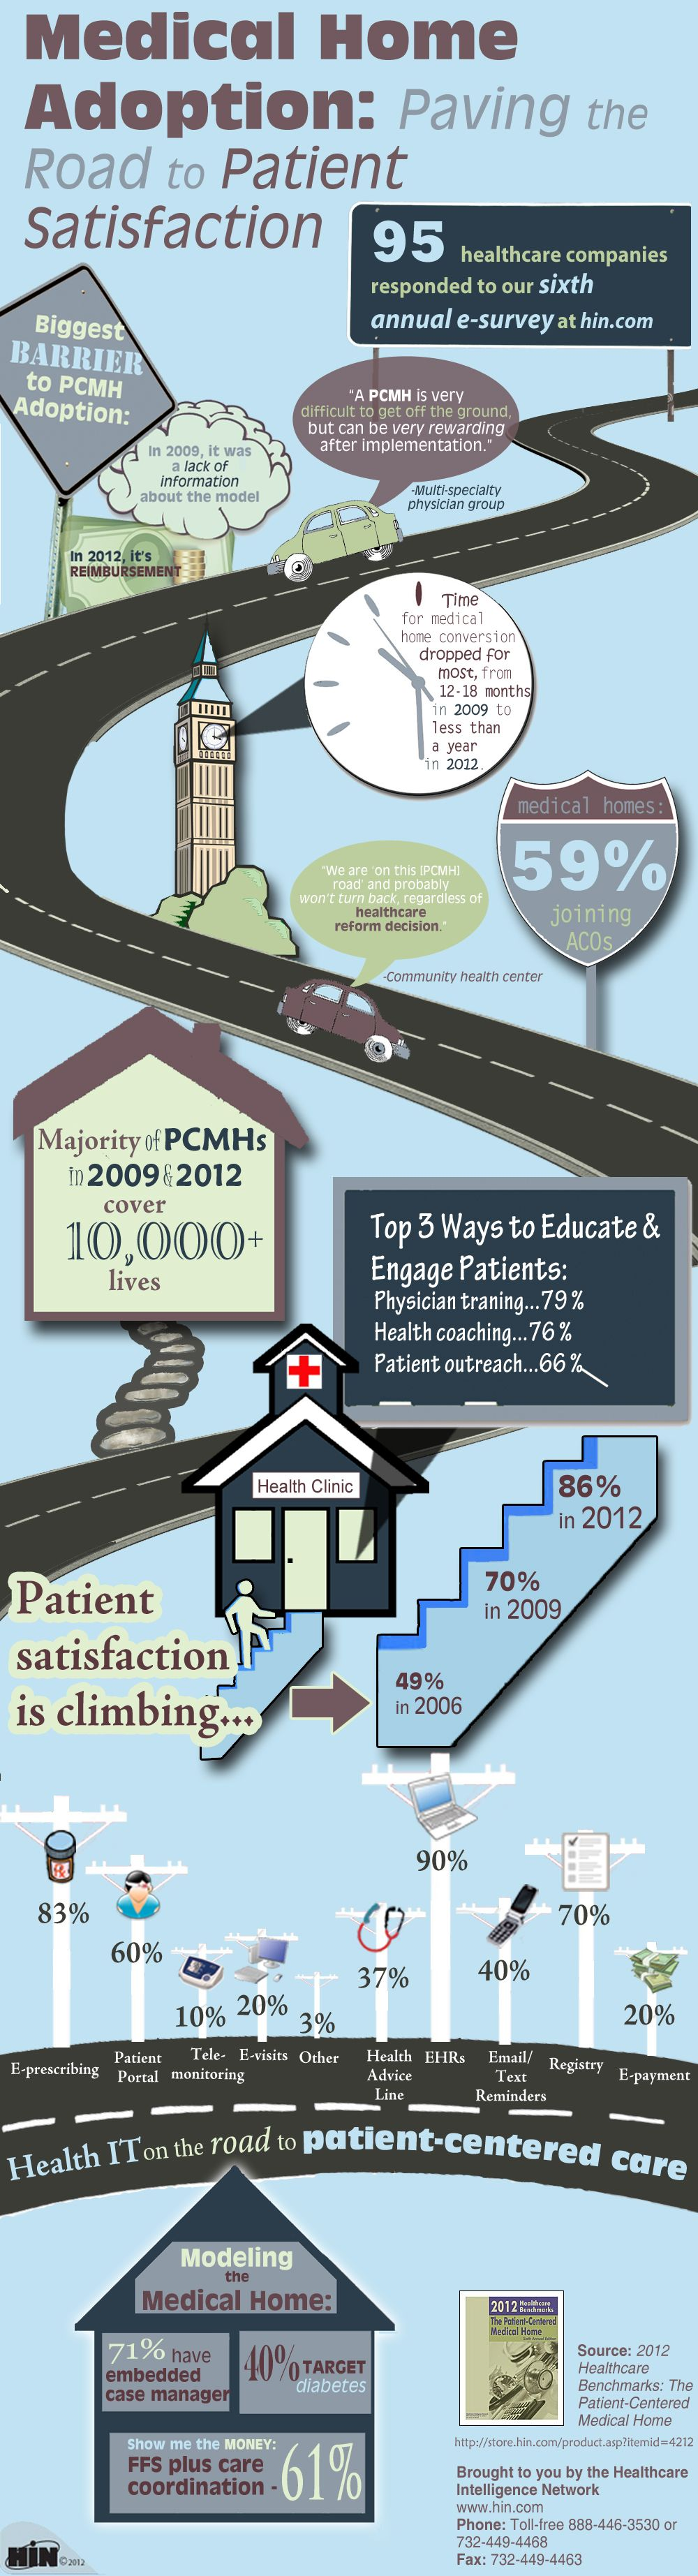 Disadvantages of the medical home model